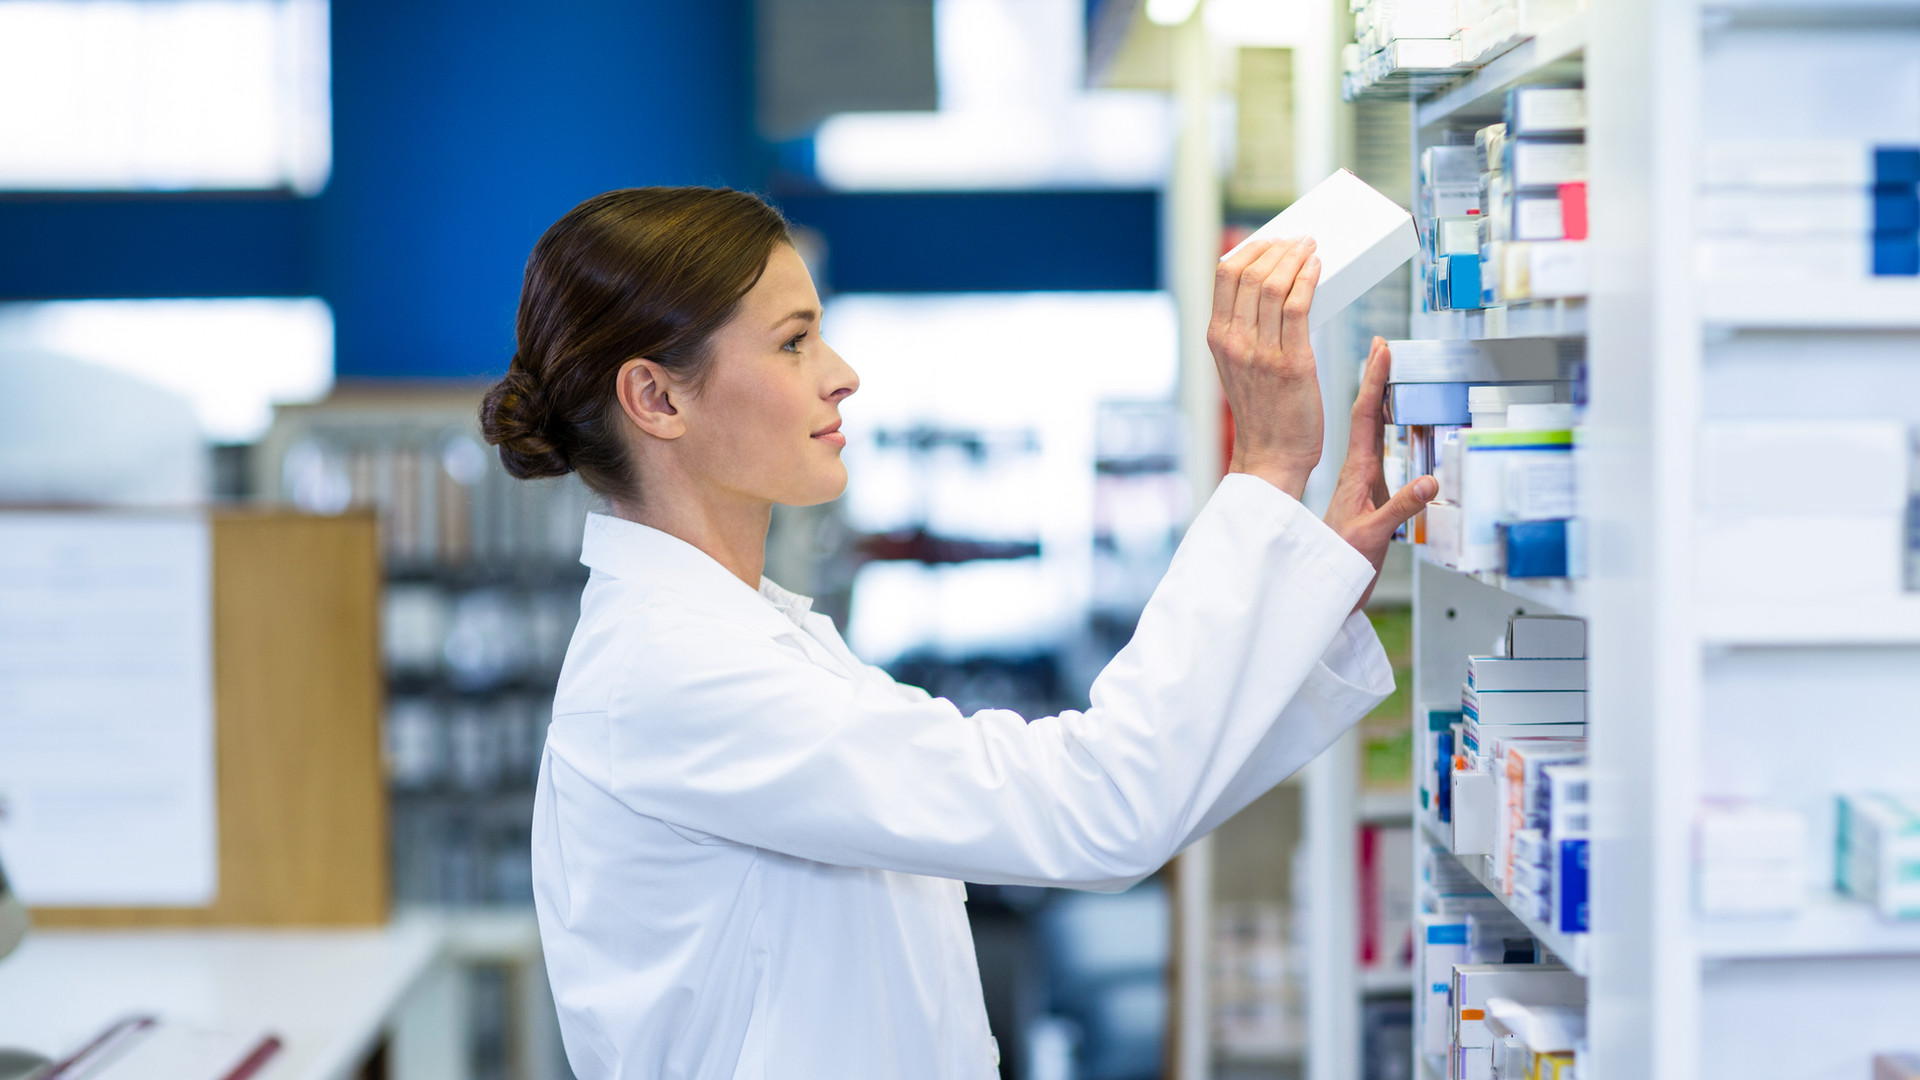 pharmacist-checking-medicine-in-shelf-SB